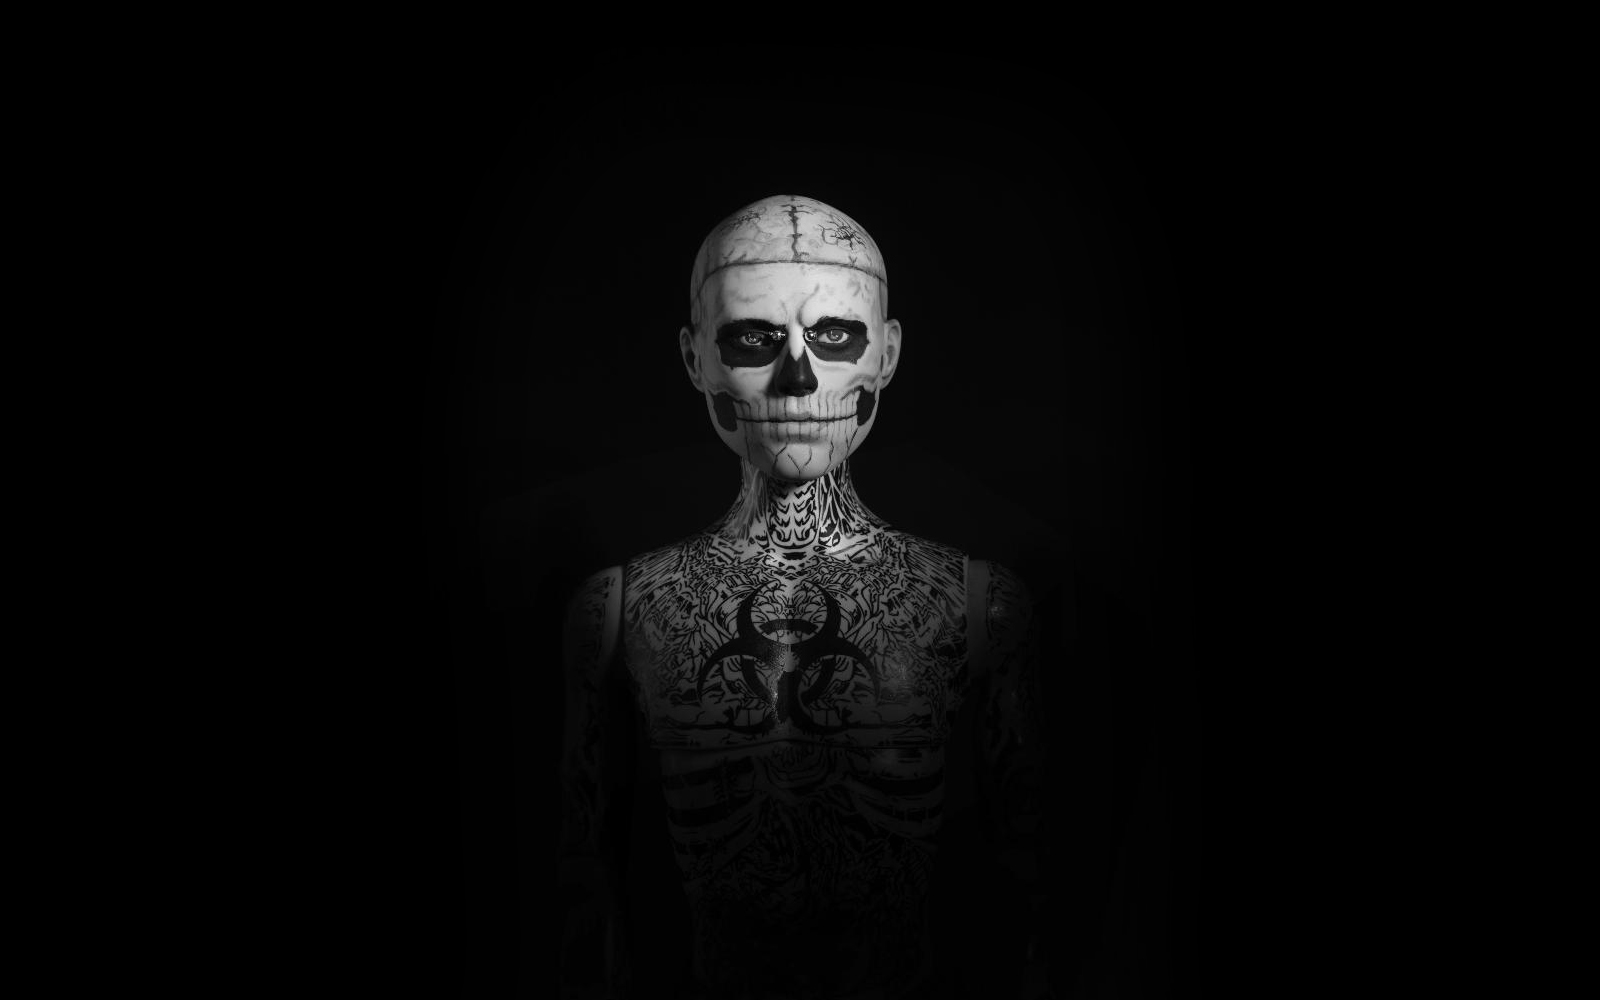 Zombie boy hd wallpaper for Boys wallpaper